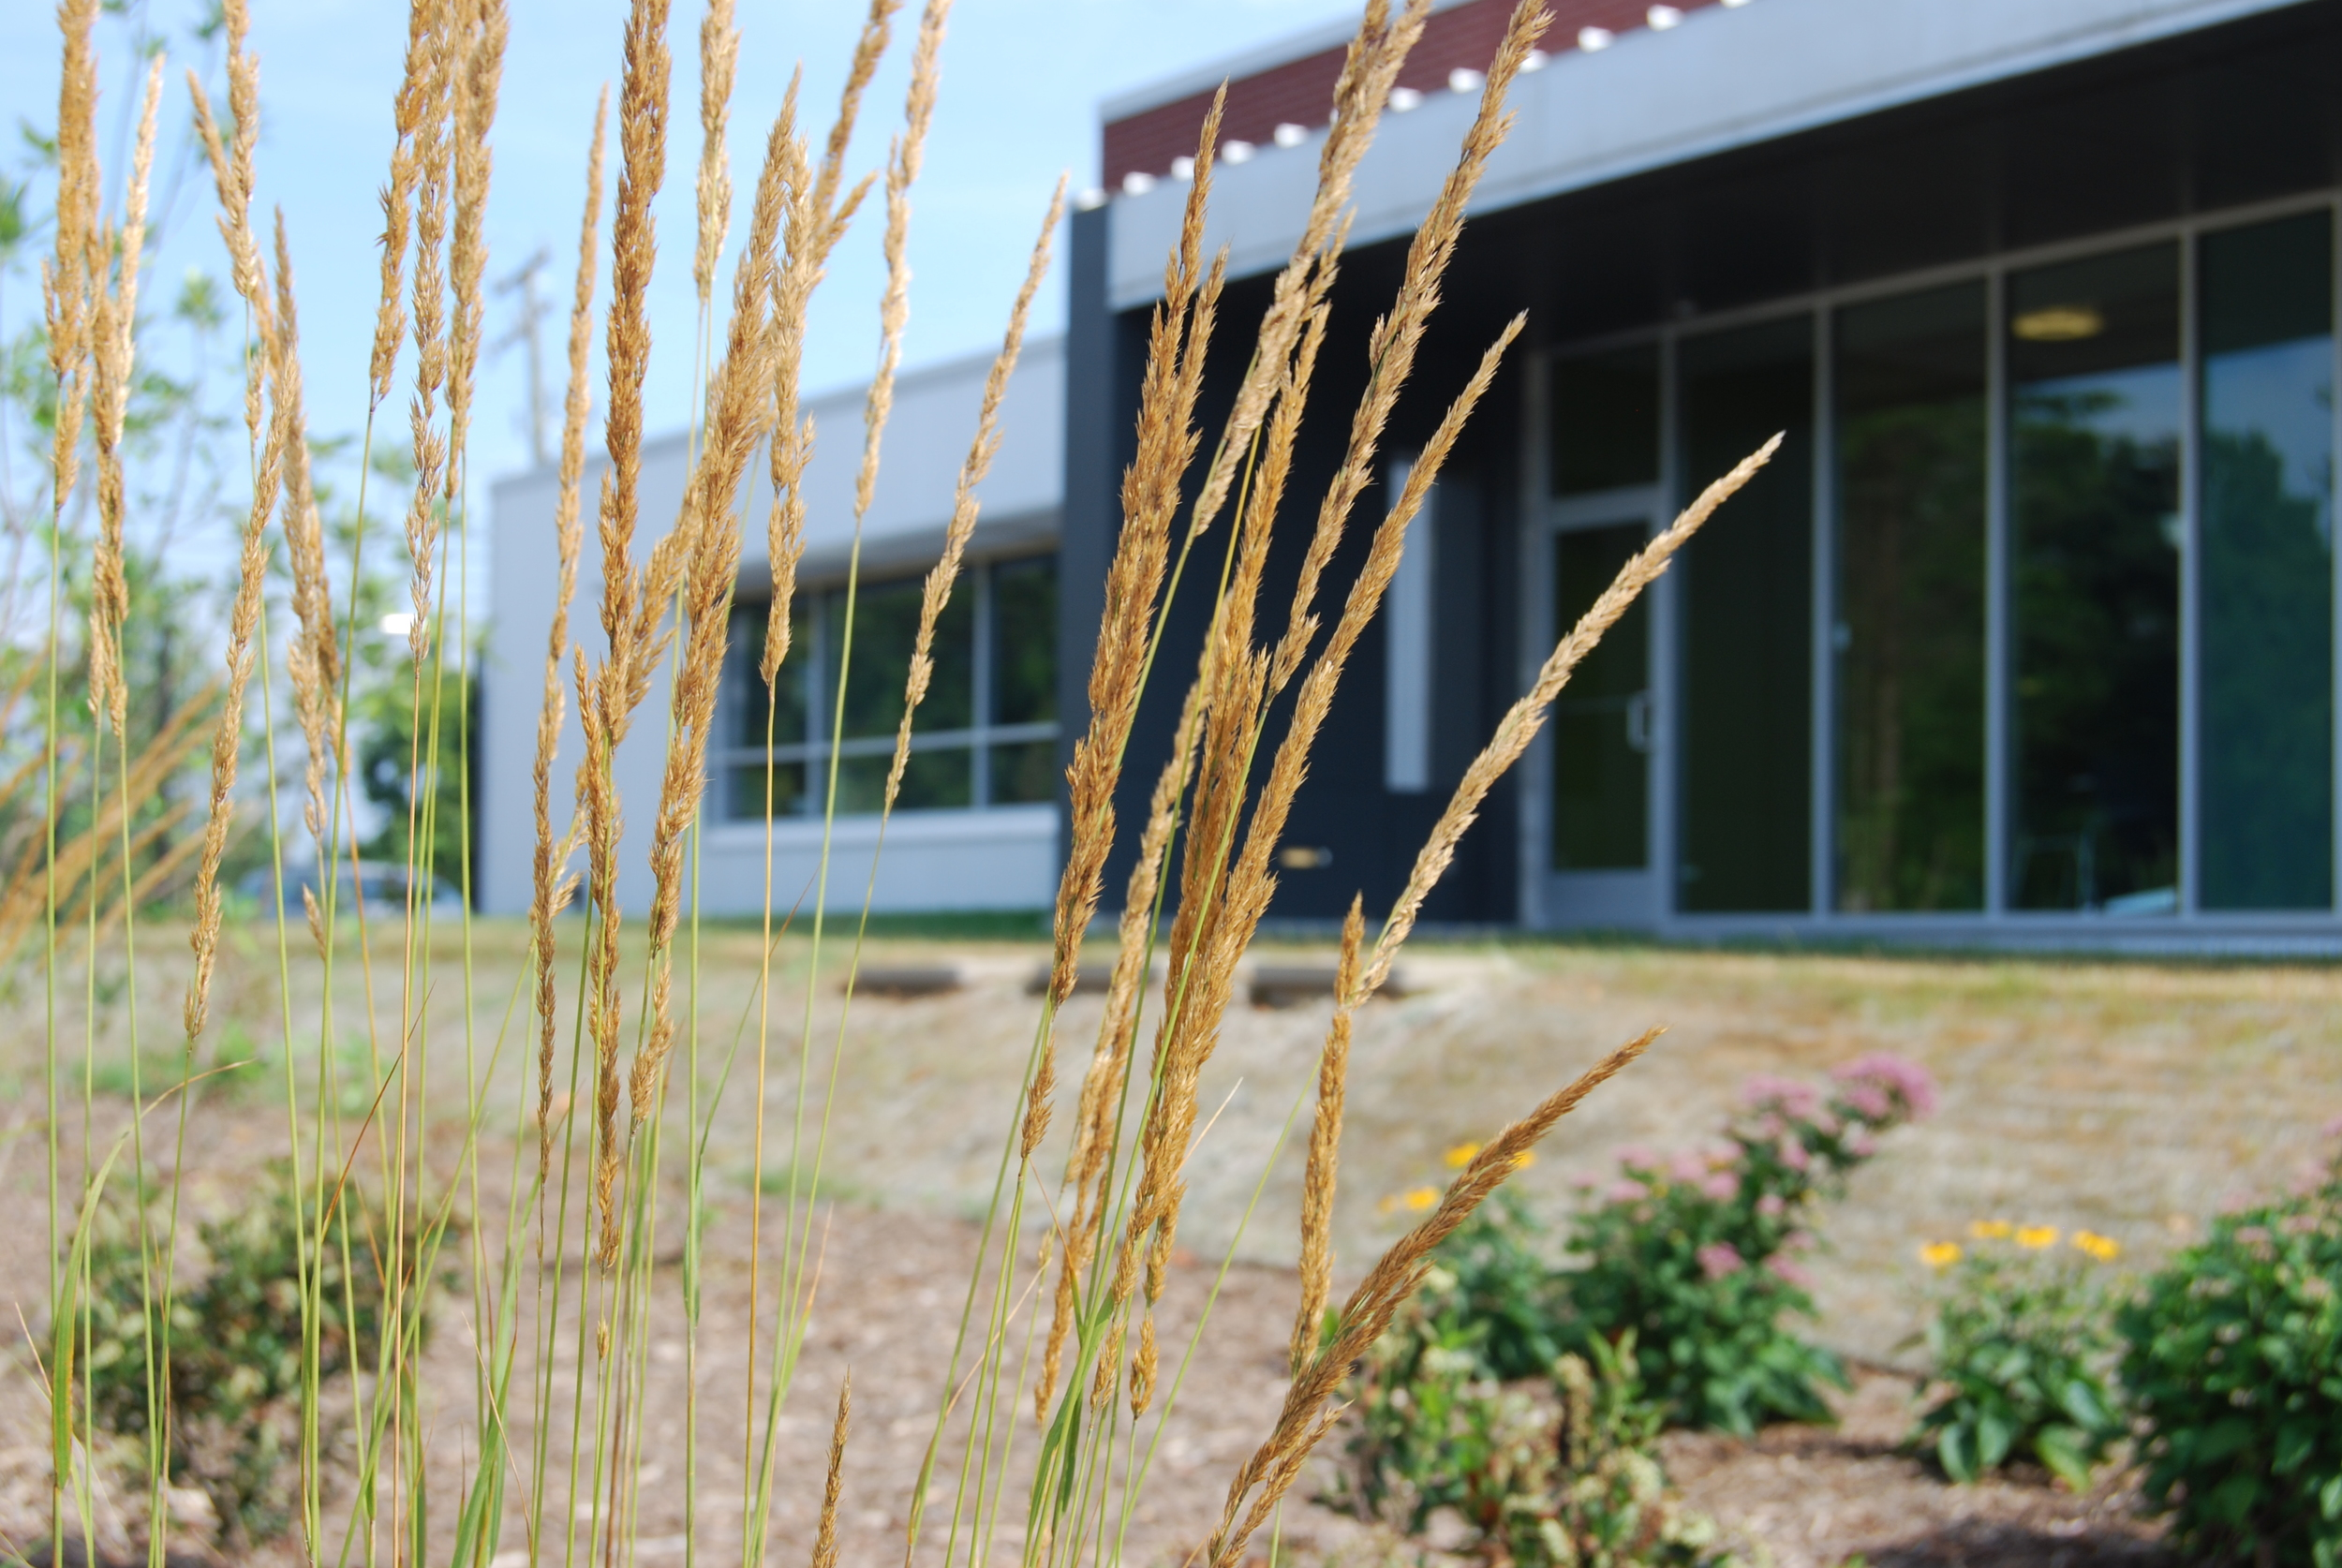 Employees enjoy ready access to natural spaces throughout the complex.